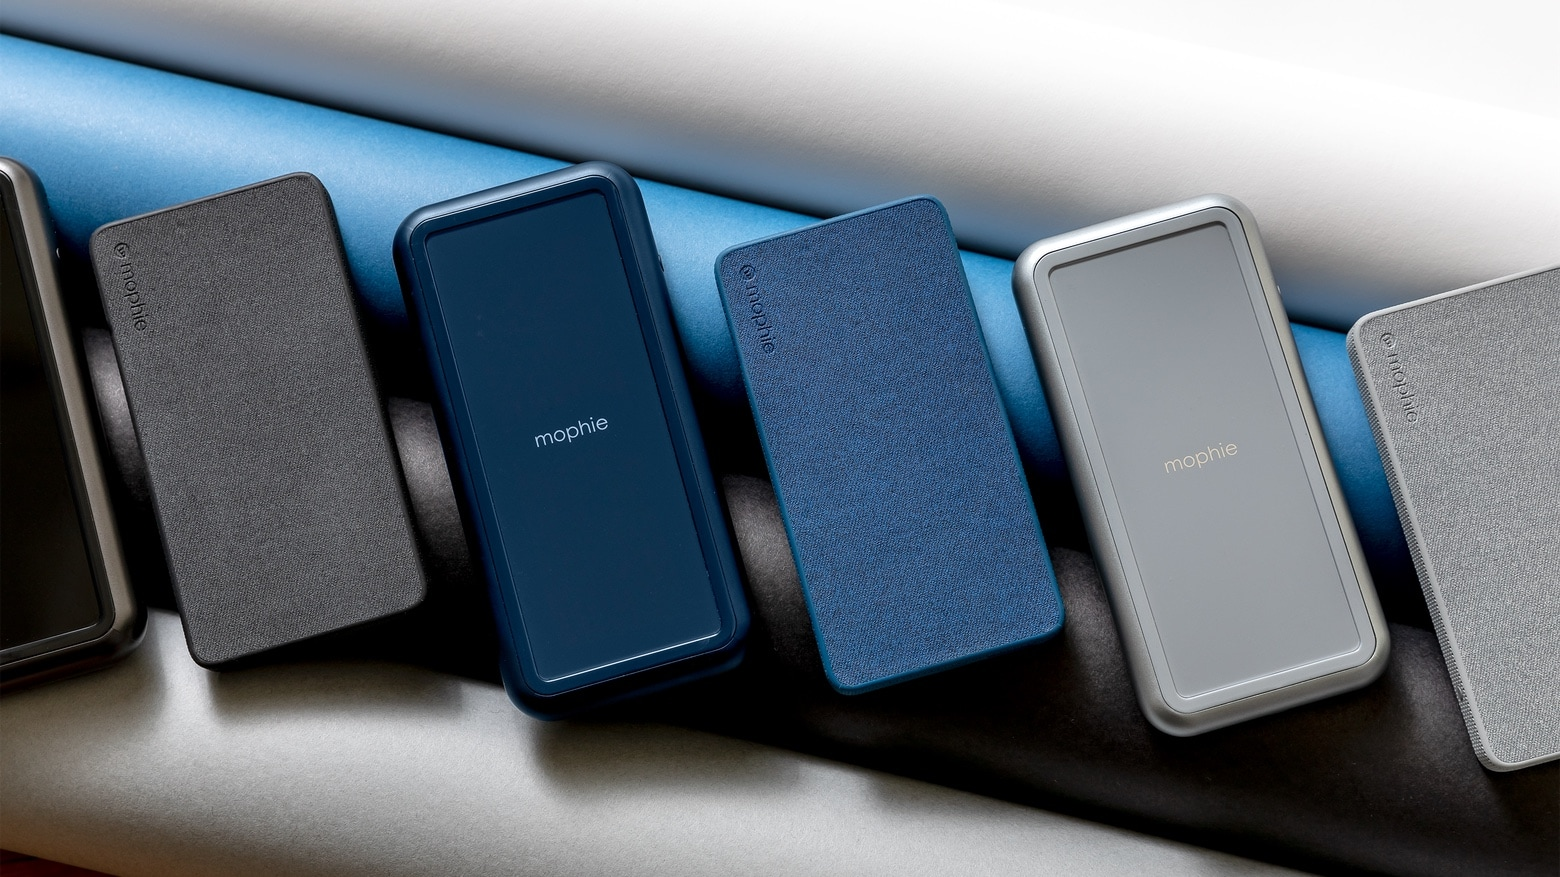 The Mophie Powerstation lineup for 2020.